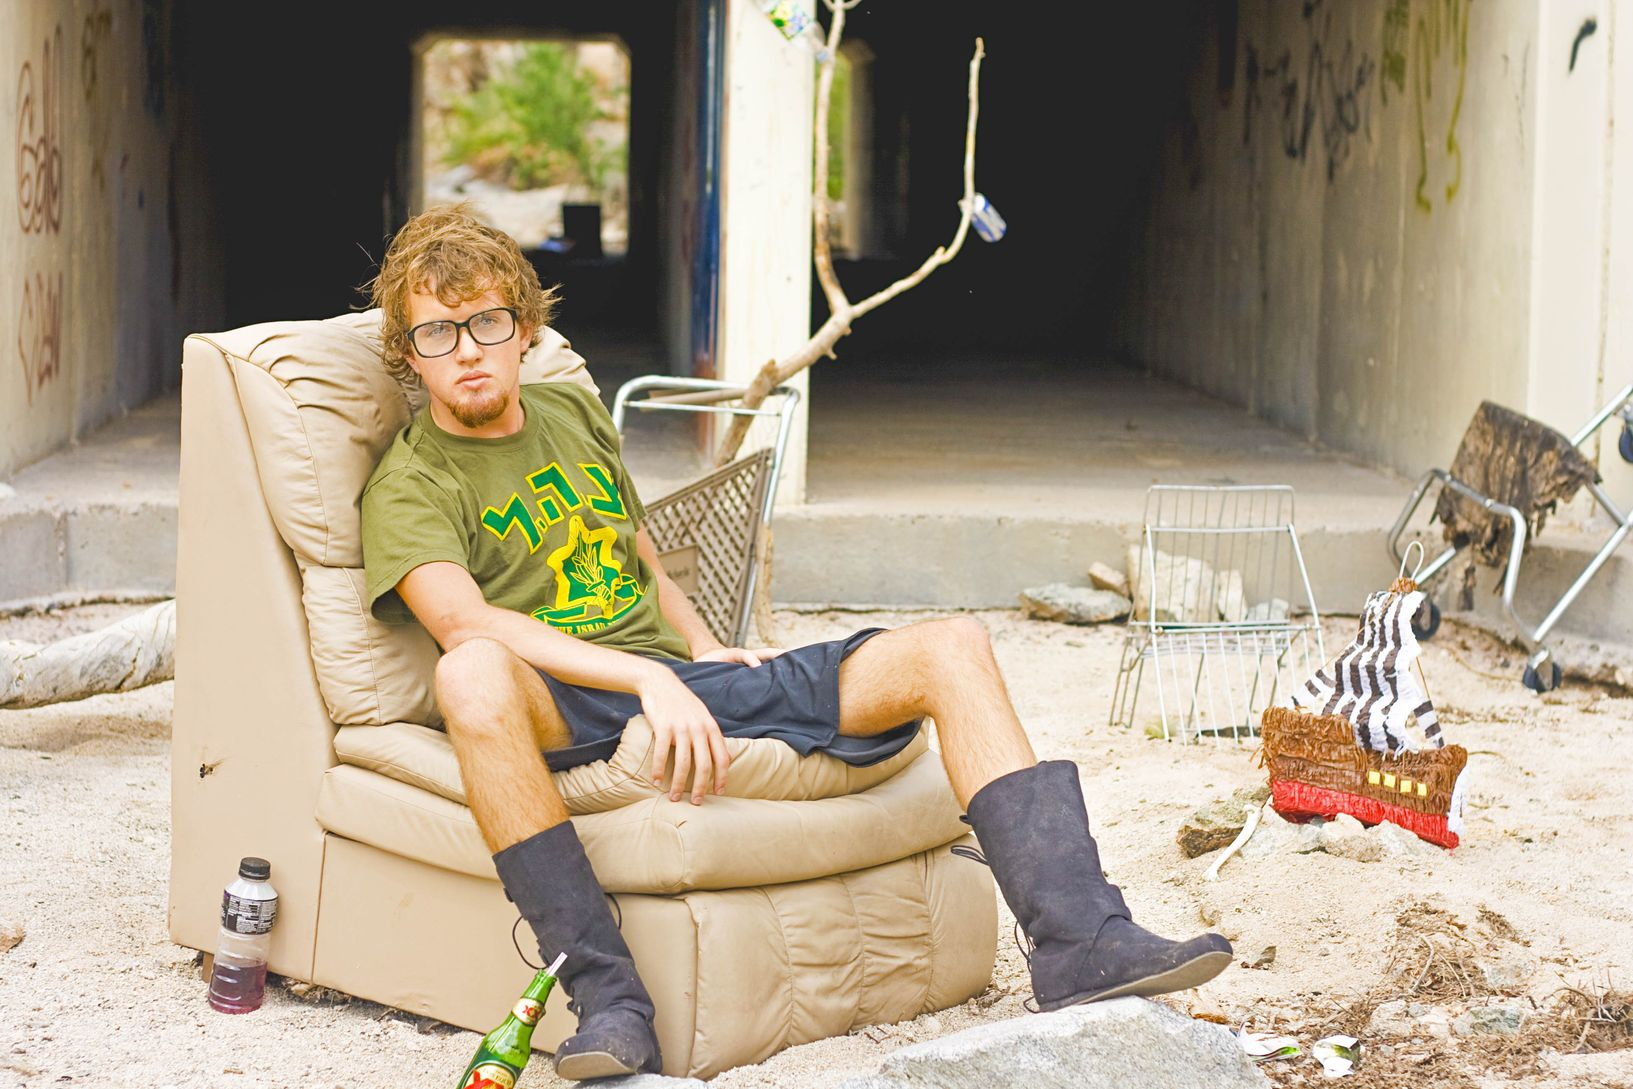 Broke, homeless, and unemployed man sitting on a couch surrounded by dirt and garbage